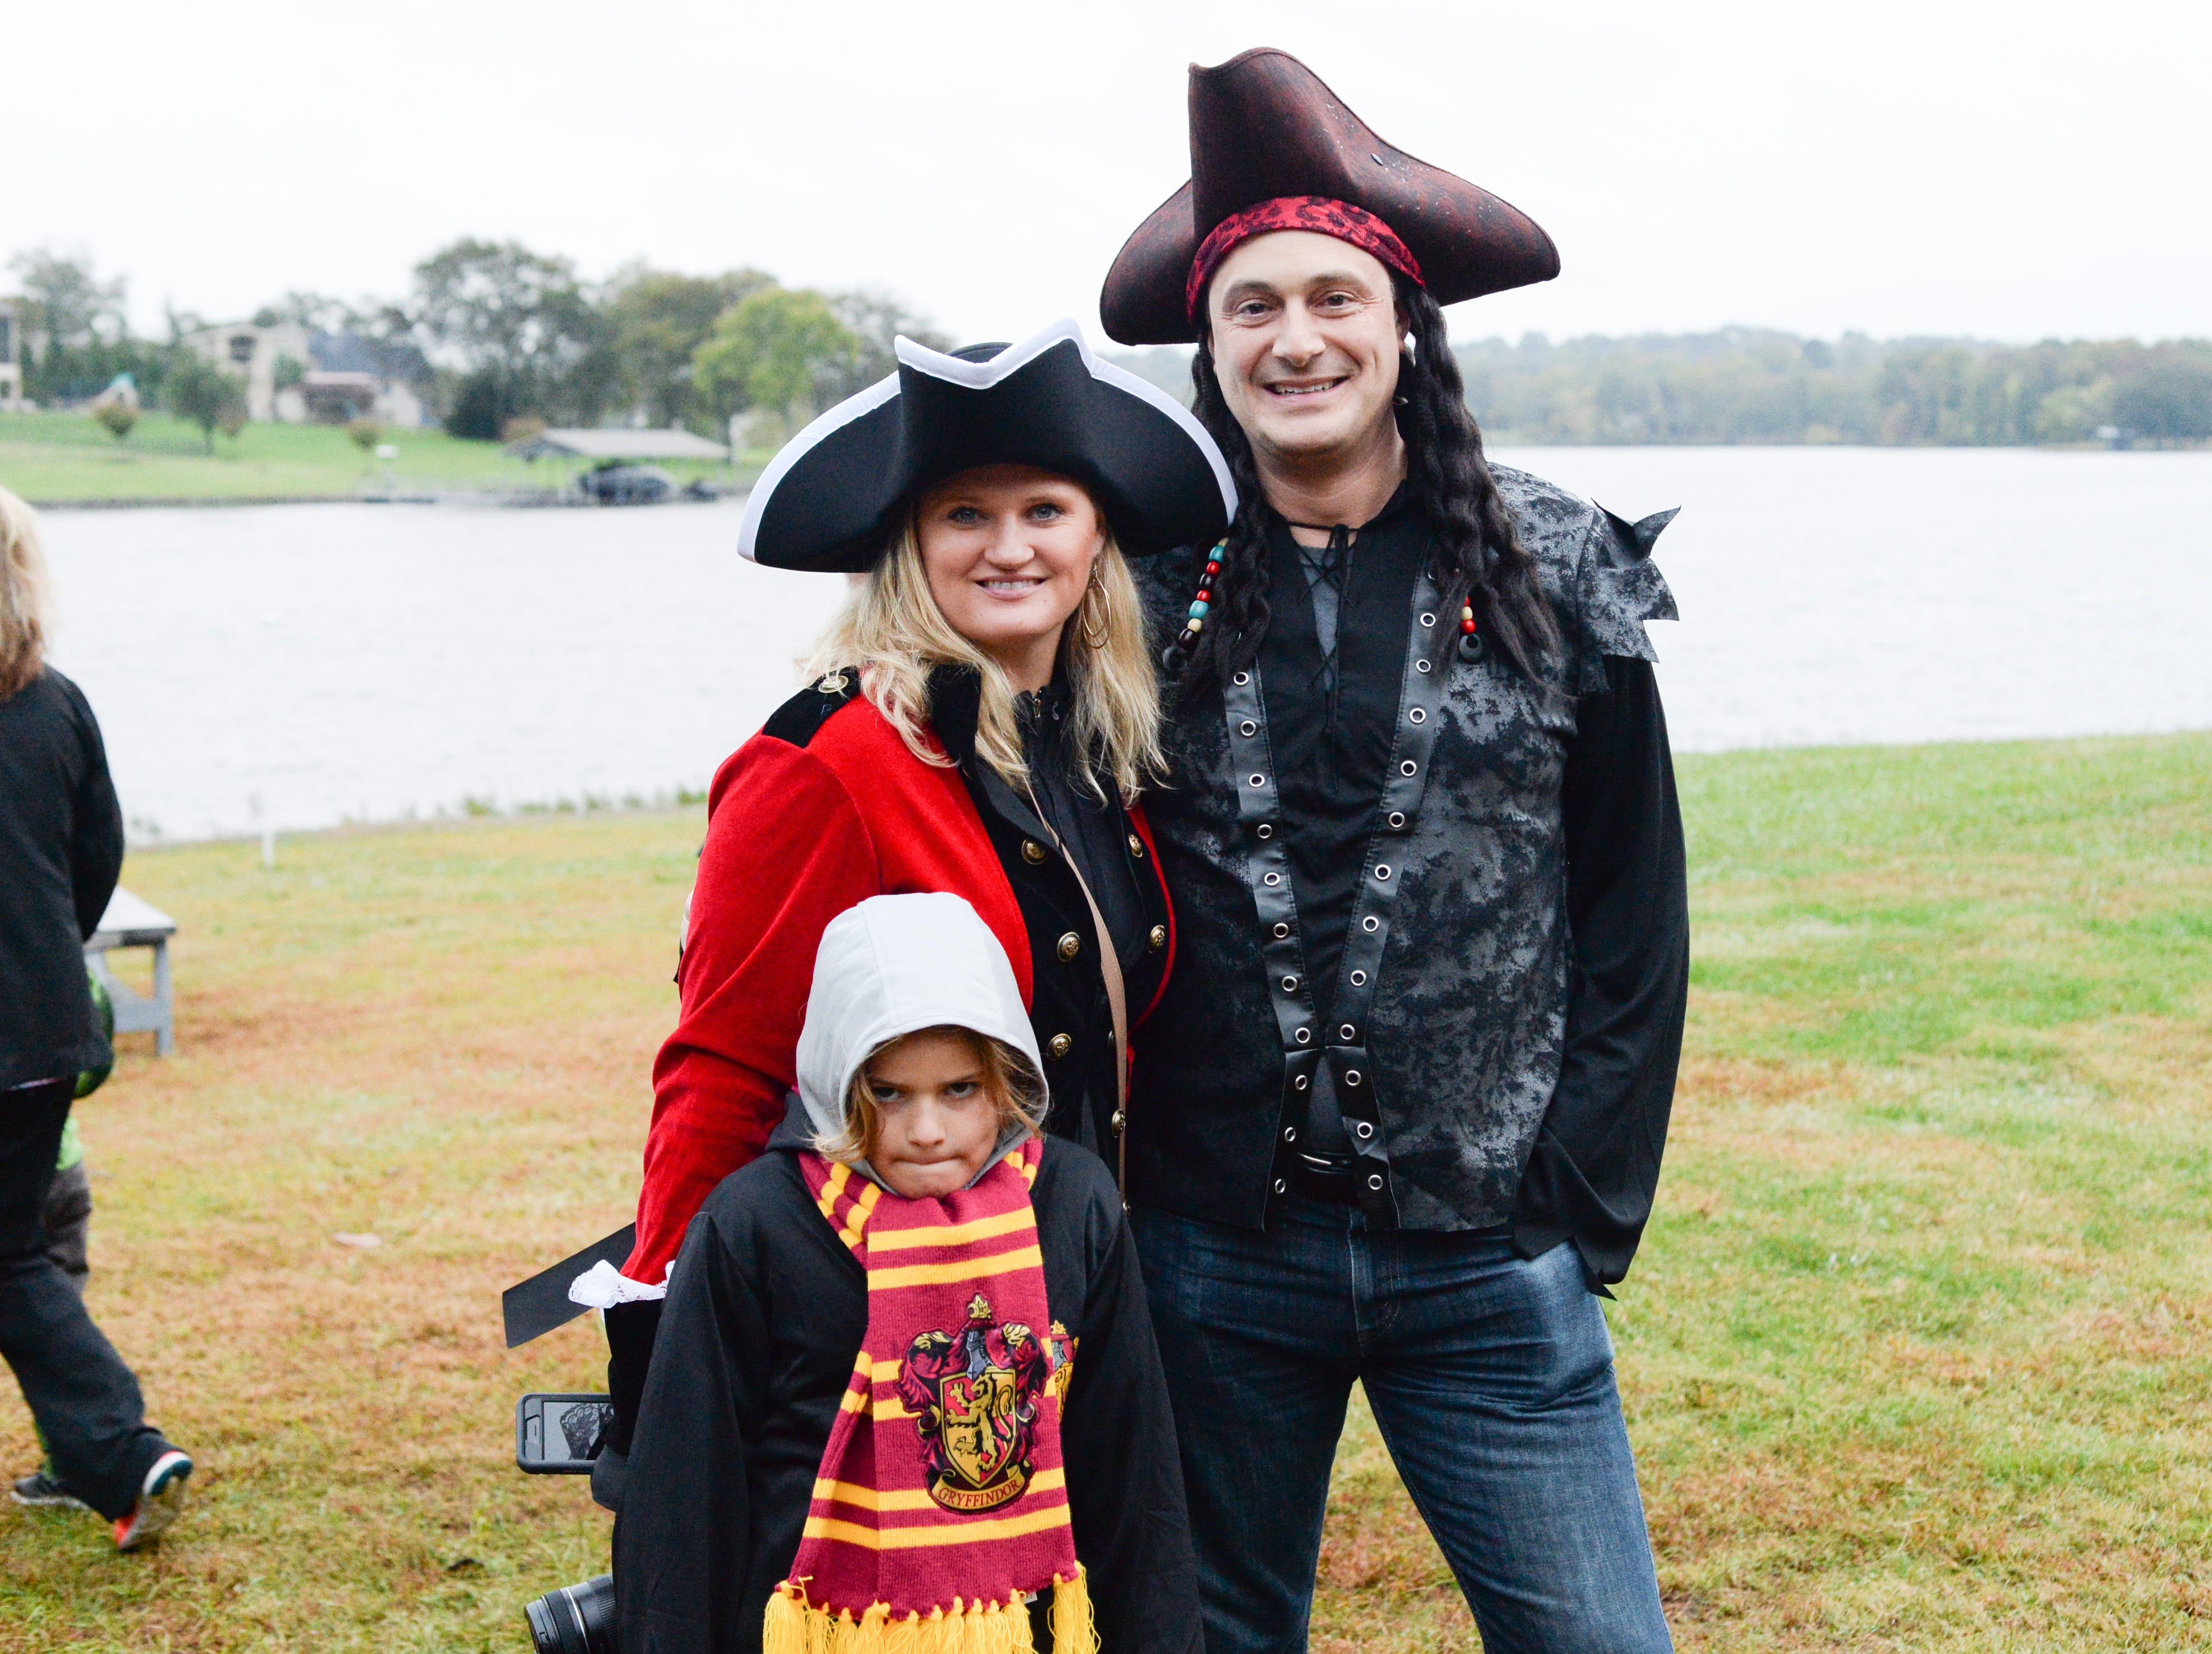 The Kothe family enjoys the Castle of Villains trick or treating event at Historic Rock Castle in Hendersonville on Friday, Oct. 26.